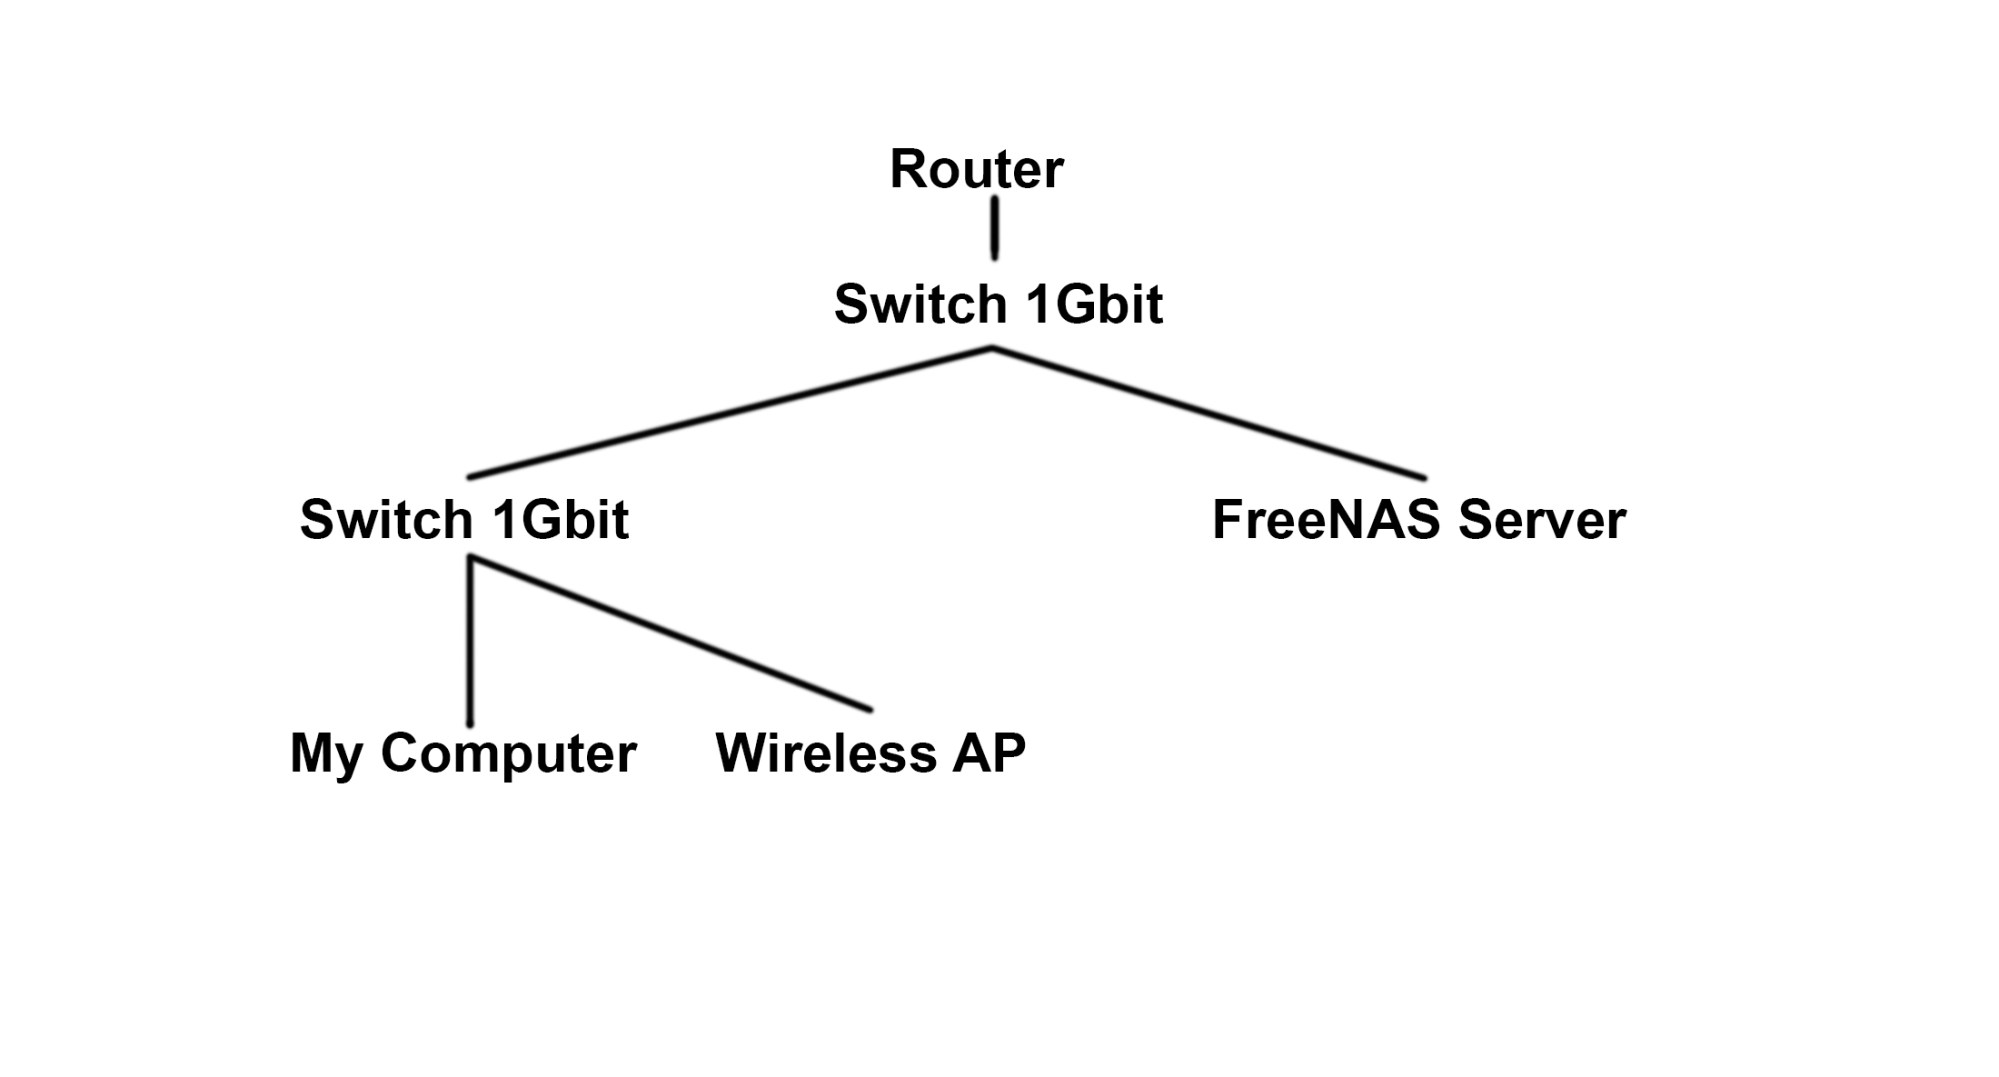 hight resolution of network diagram i would like to reach transfer speeds of close to 1gbit s when working between my computer and my server is the slow router speed an issue